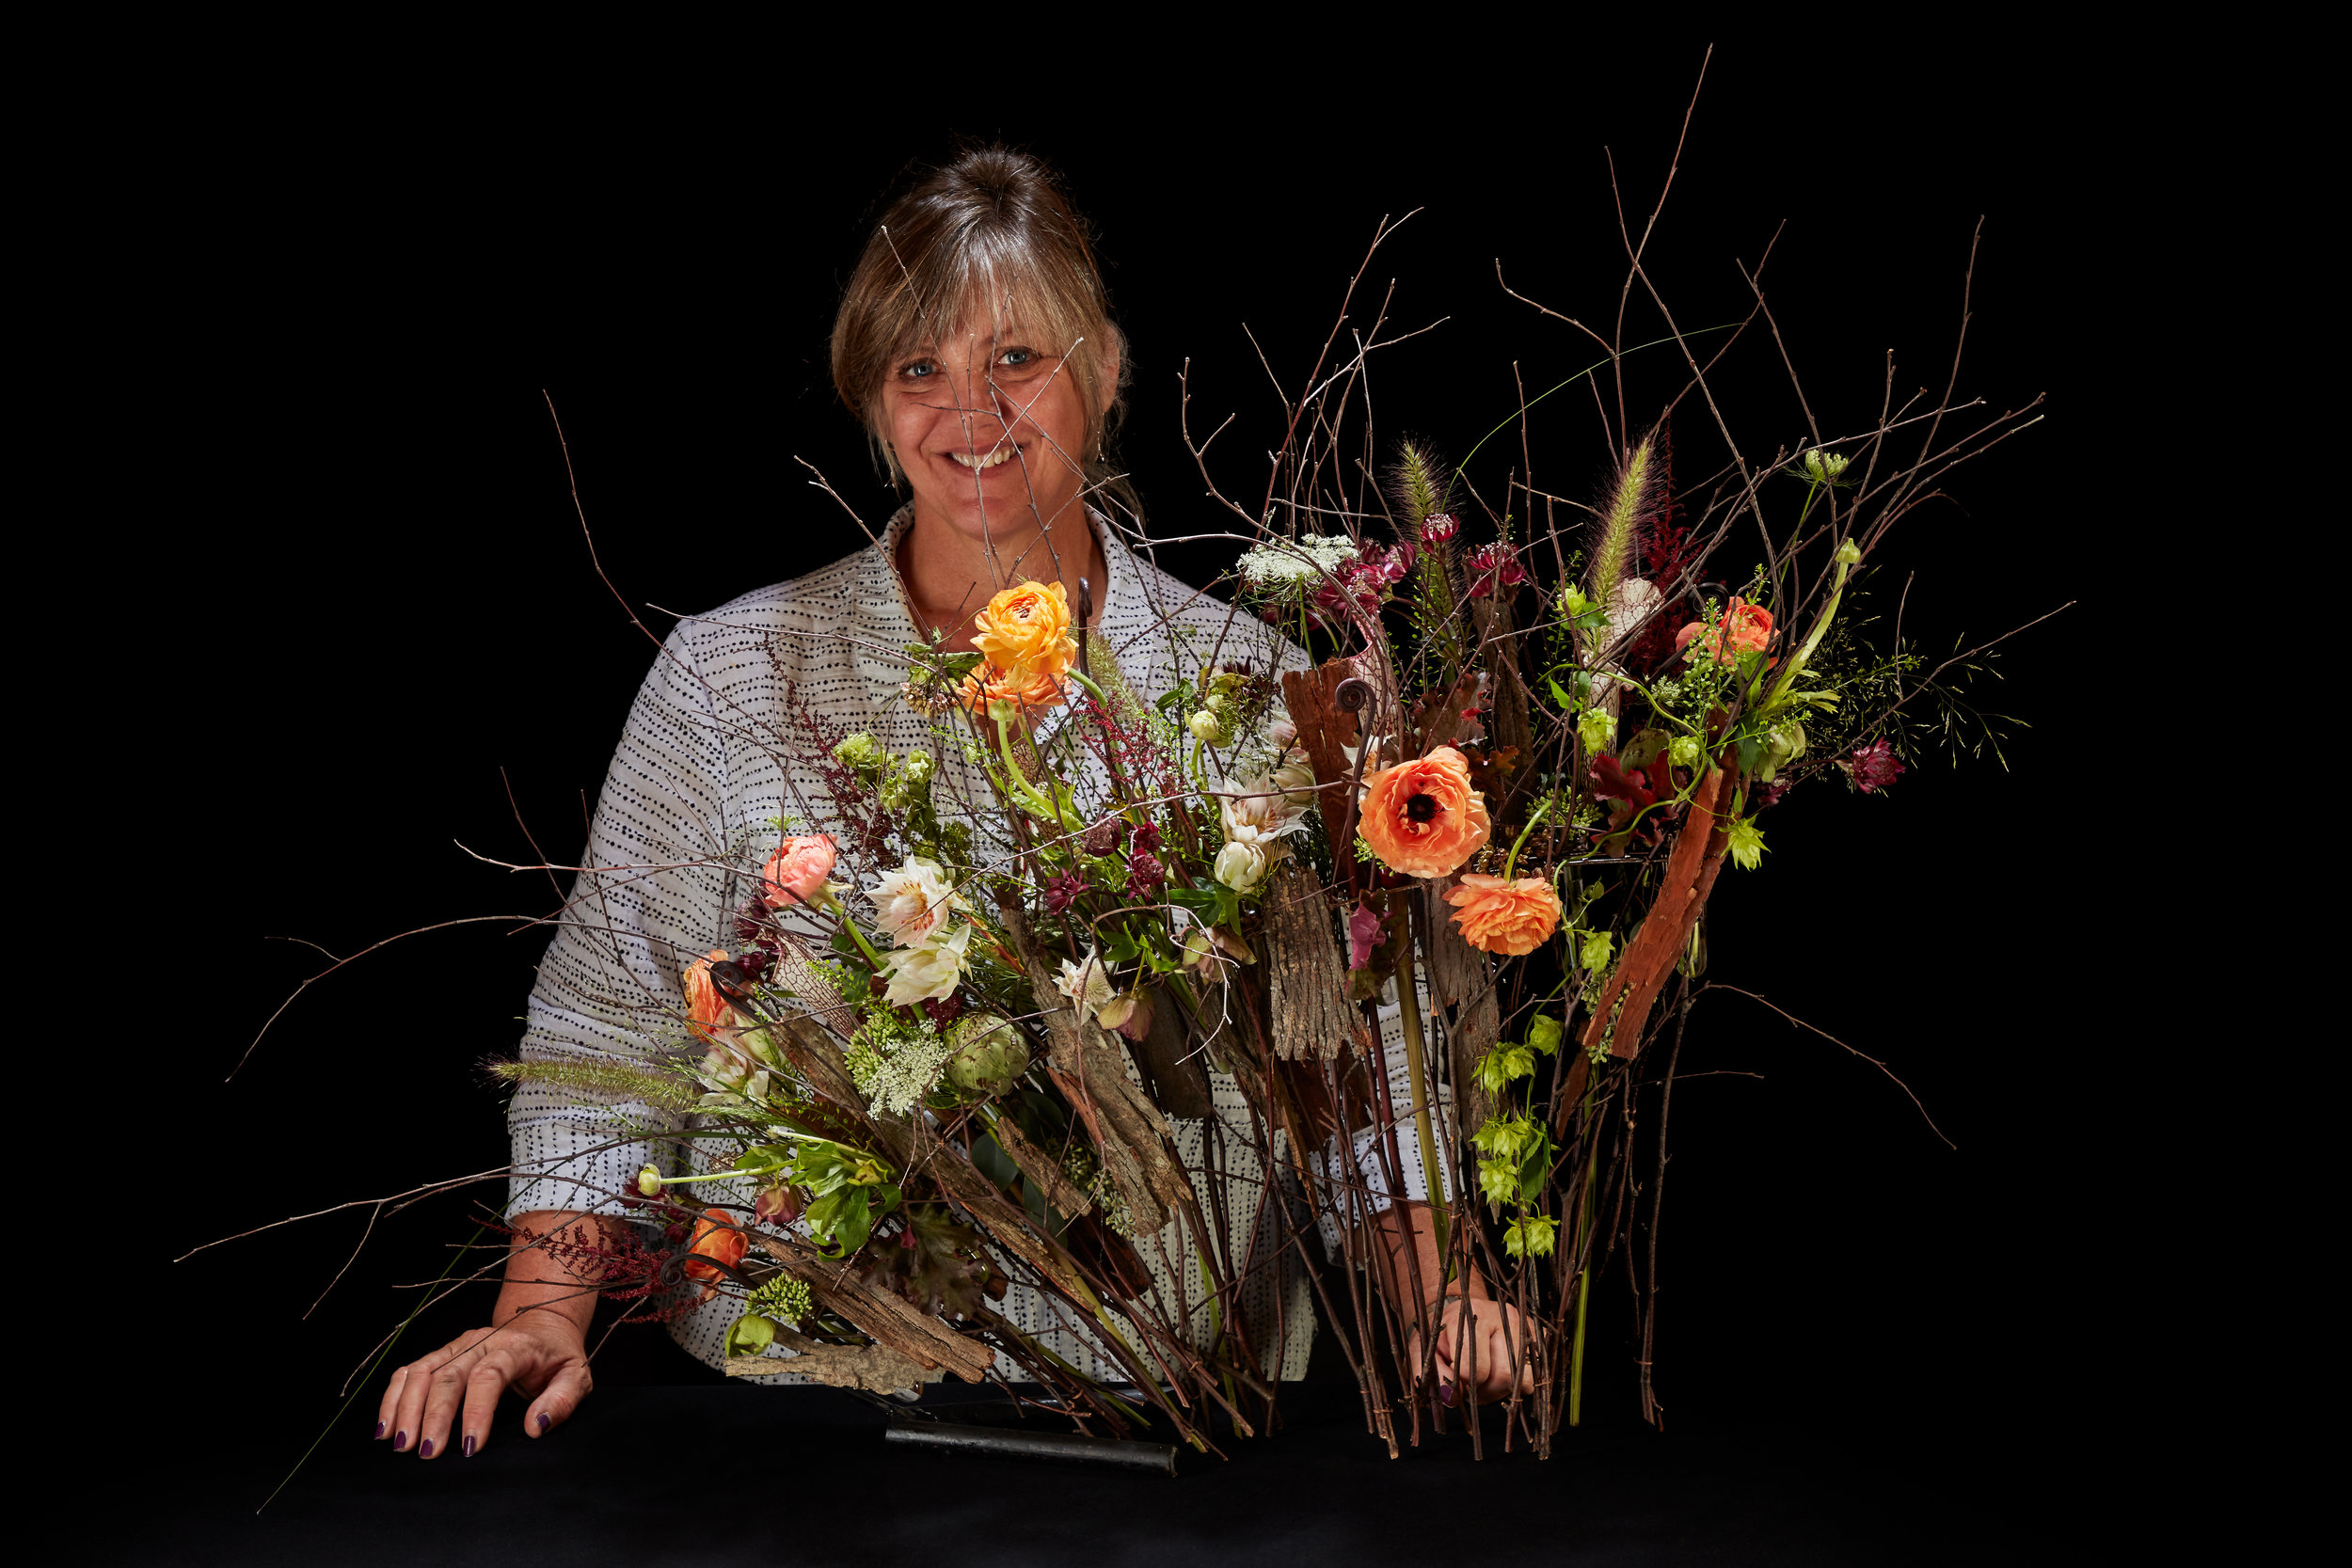 Recipient of Bronze Award in the category 'Transparency' in Fusion Flower Magazine International Designer of the Year Competition. Photo and copyright by Charles Mayer Photography